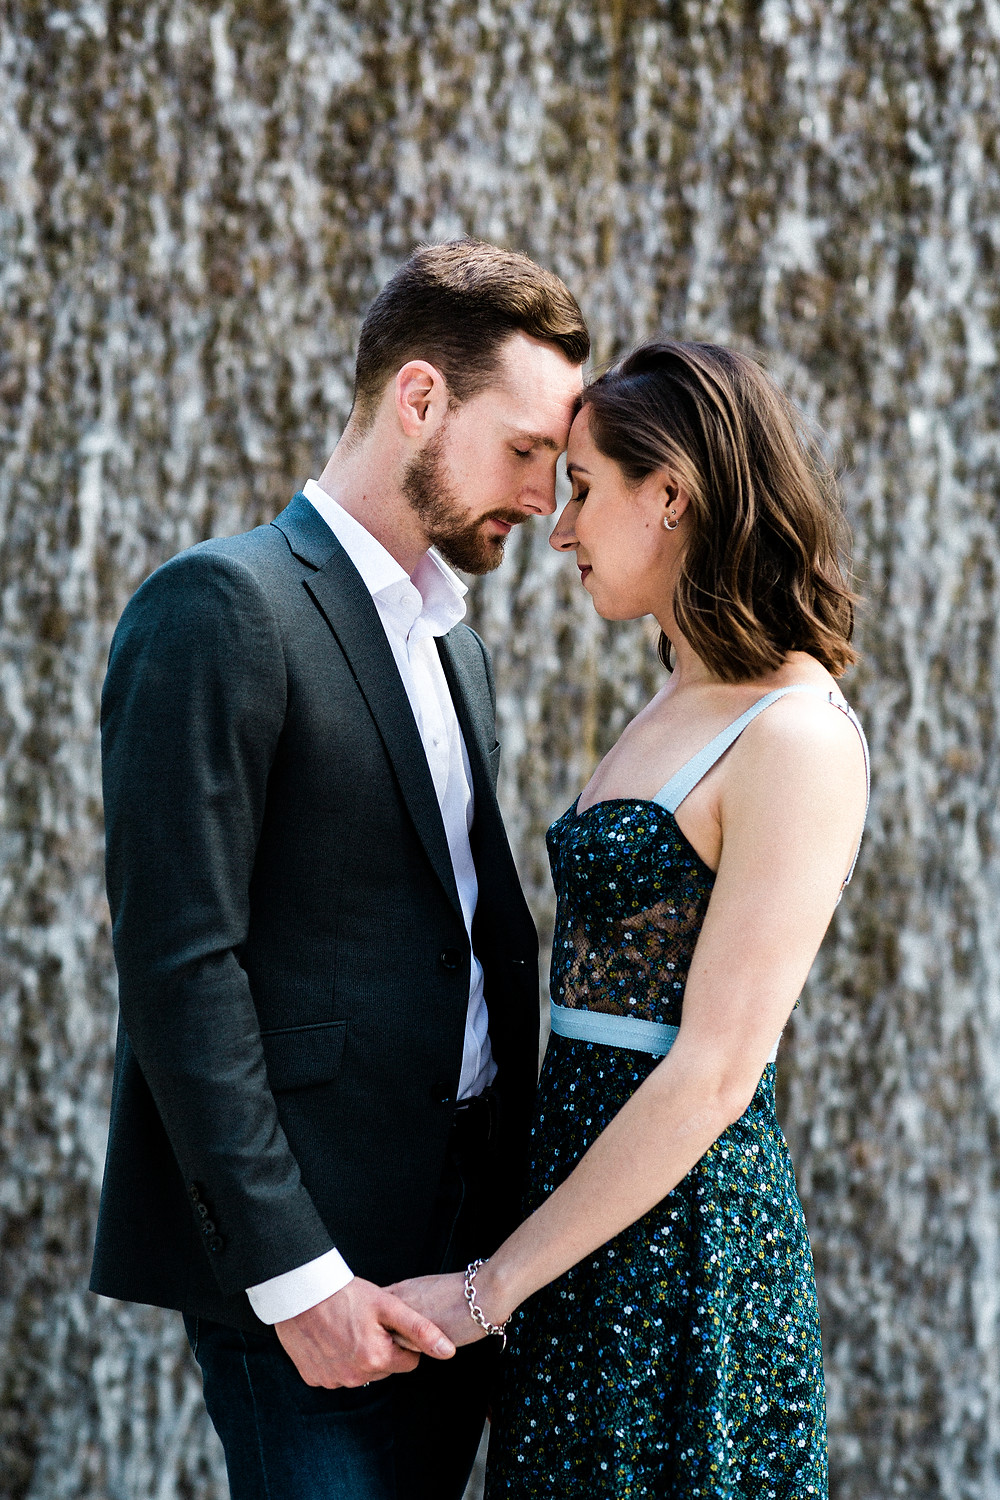 engagement shoot outfit ideas what to wear